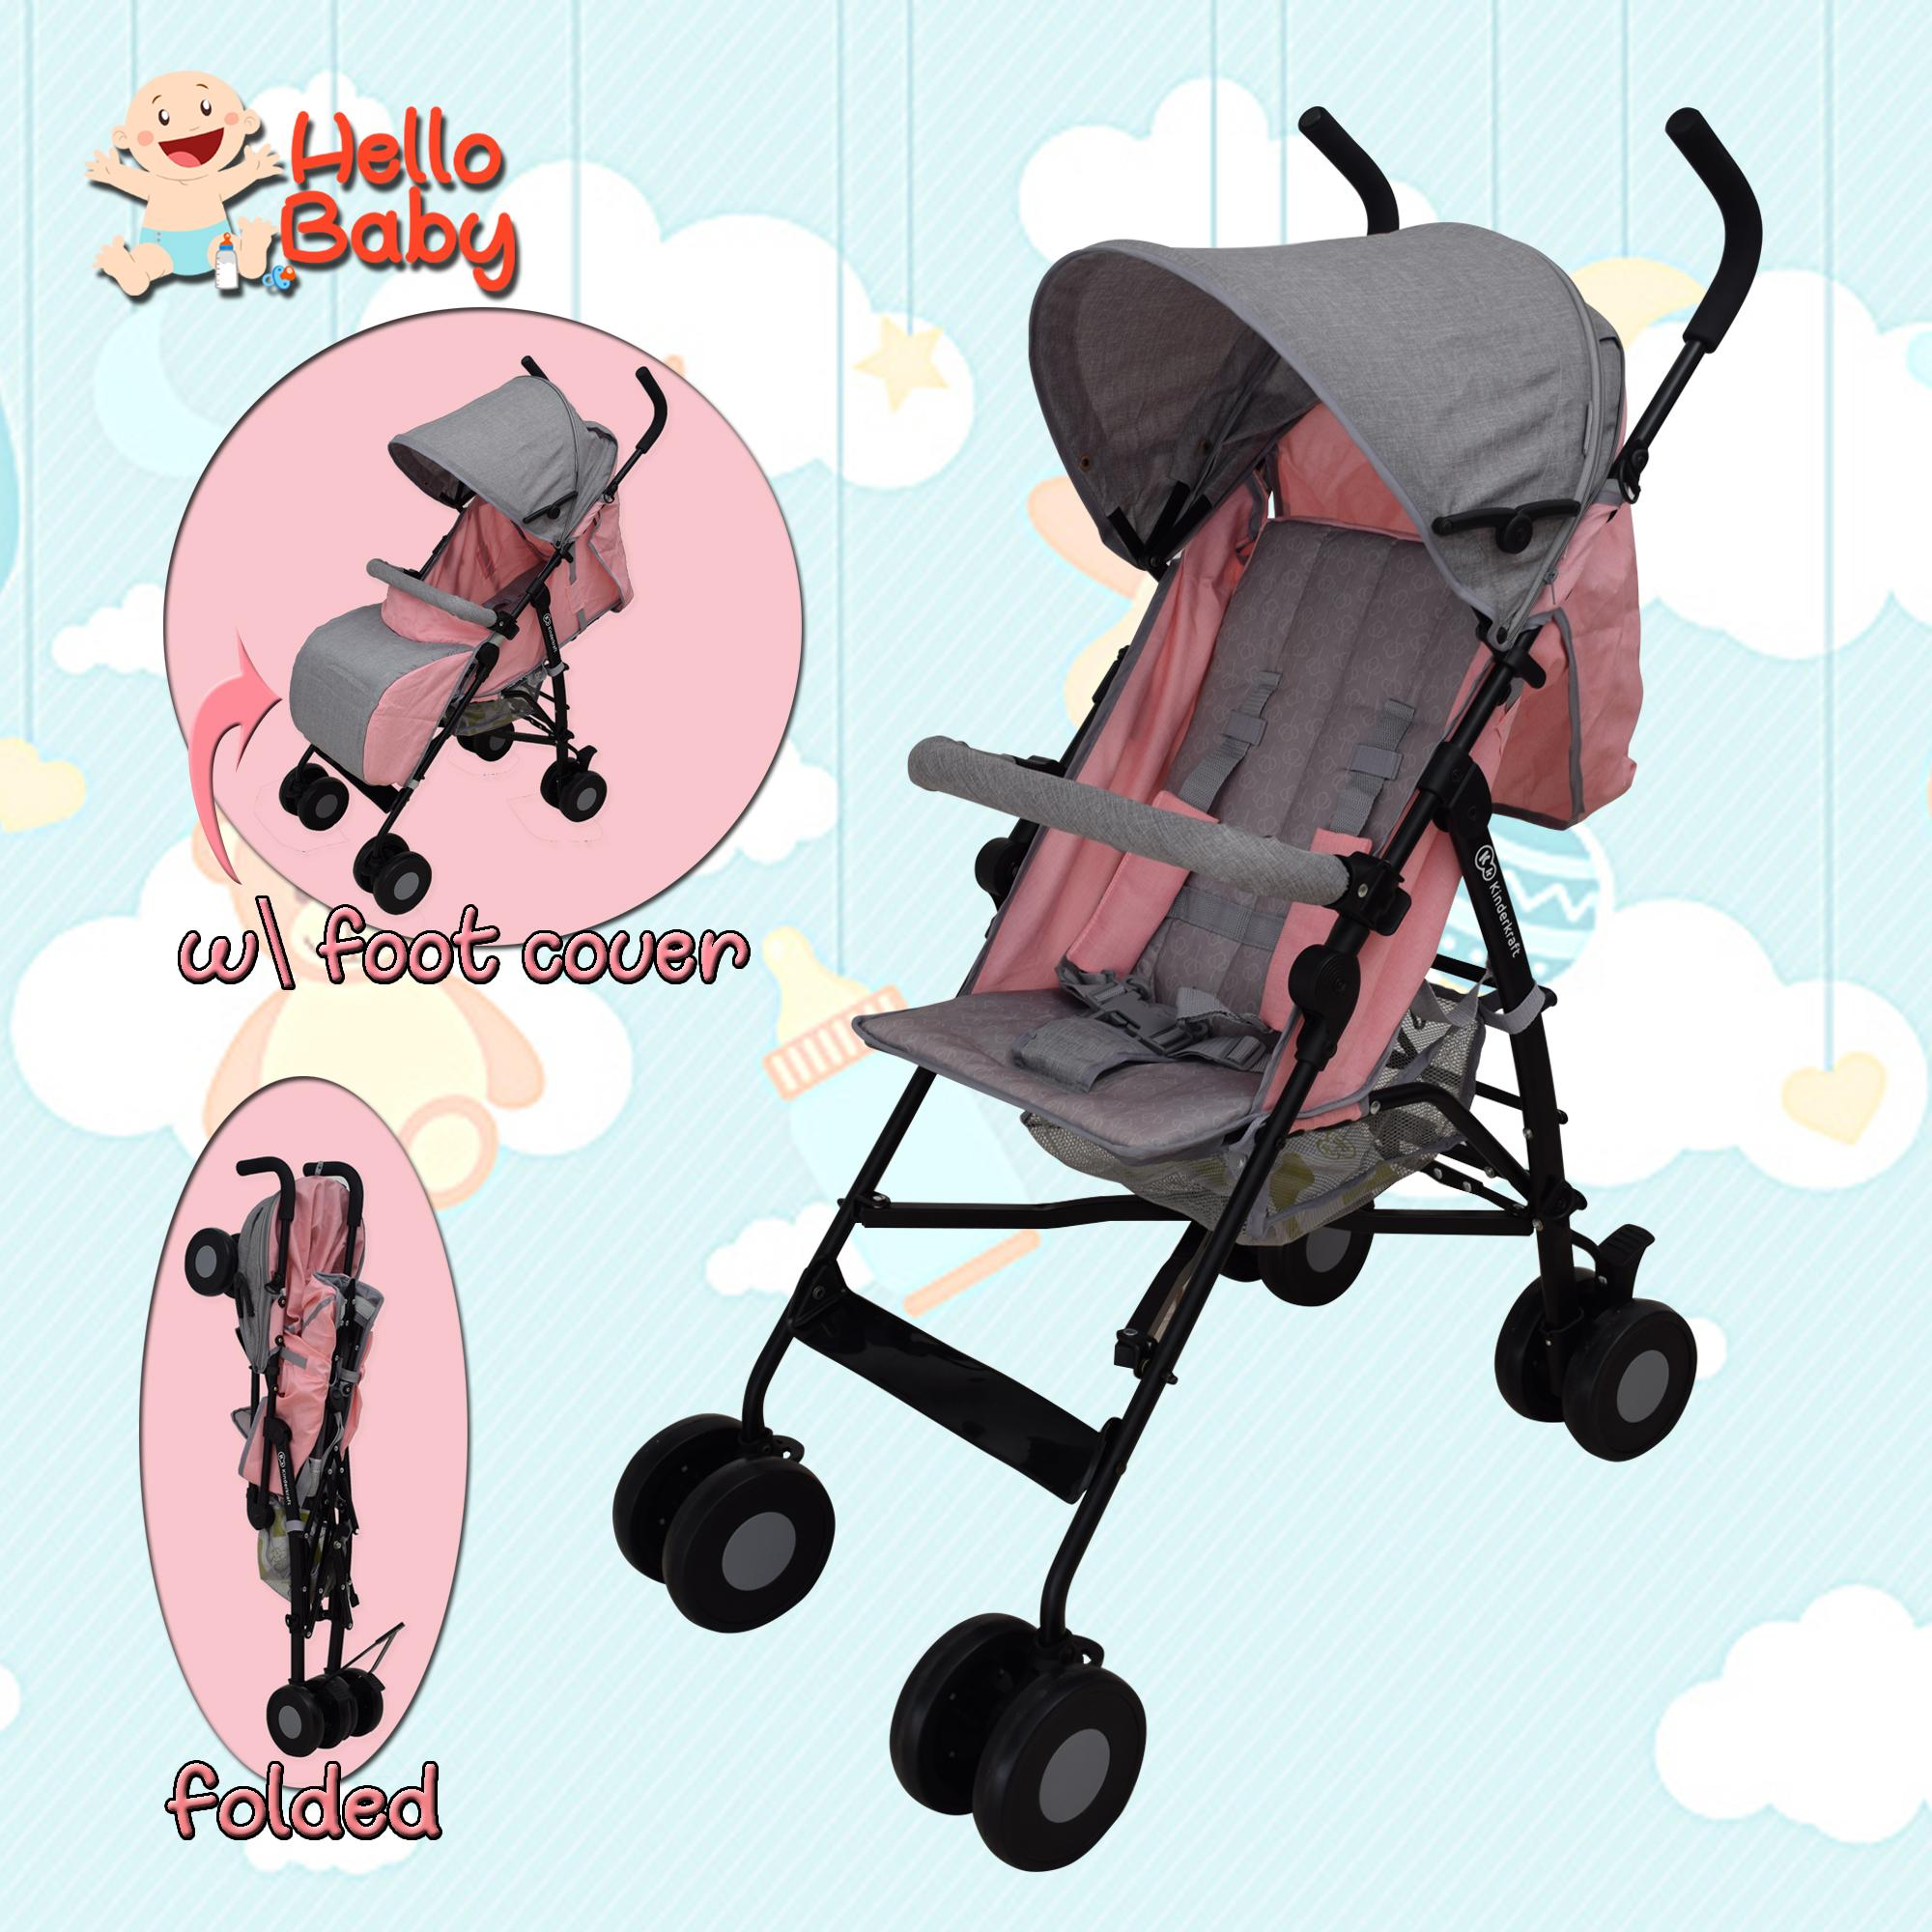 Hello Baby 508 2 Kinderkraft Baby Stroller Portable Comfortable Folding Infant Umbrella Stroller